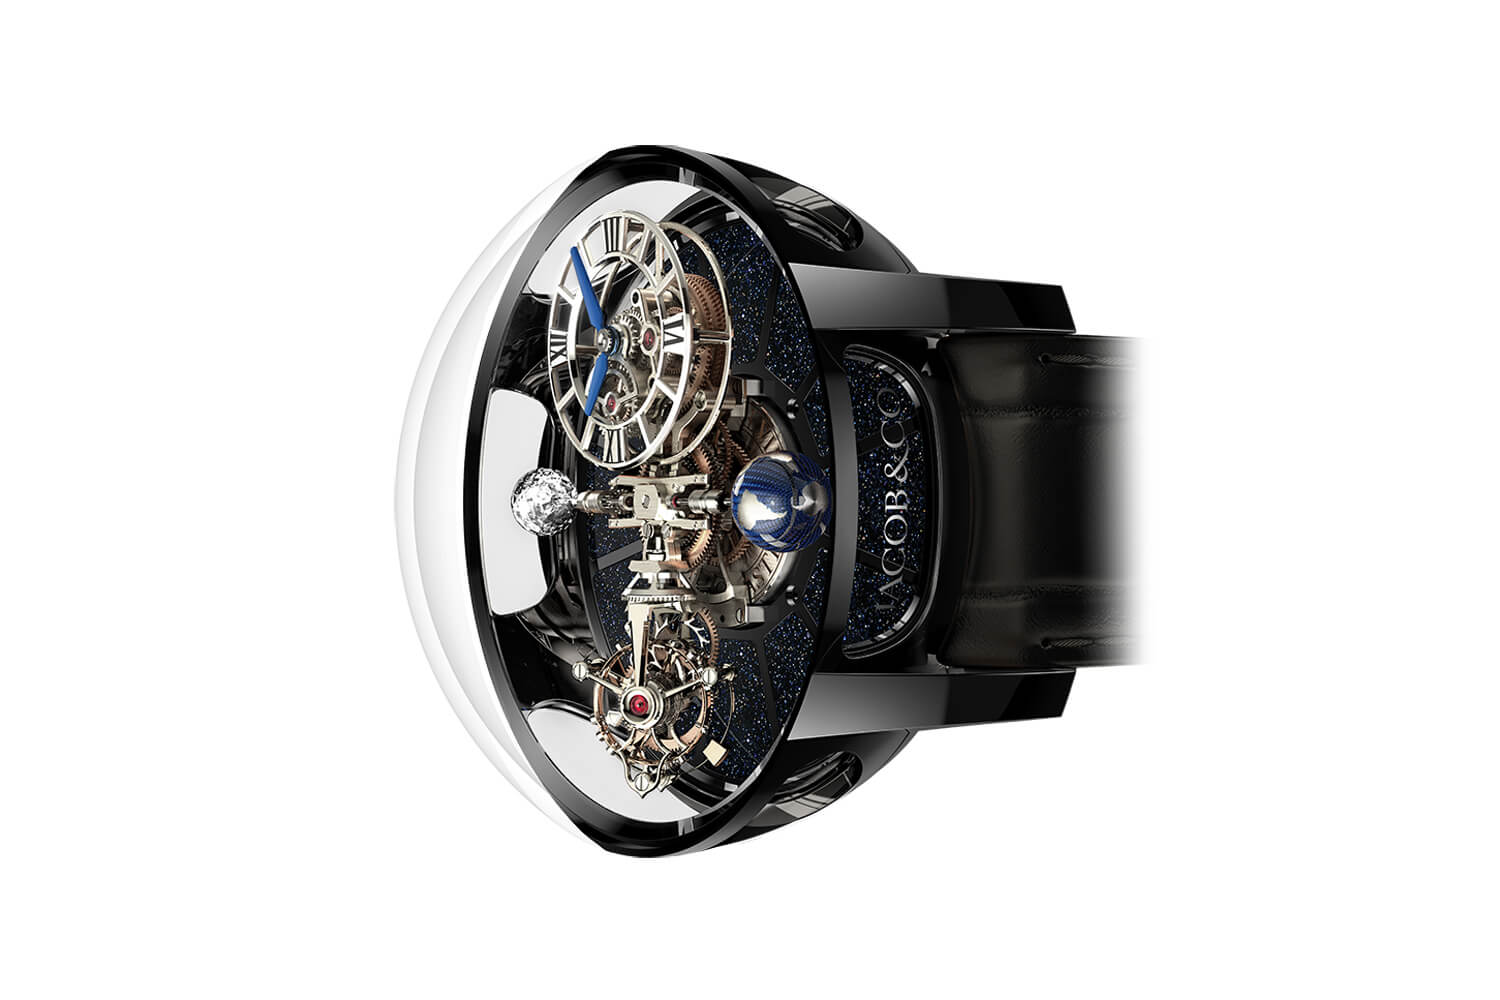 Đồng Hồ Jacob & Co Astronomia Tourbillon Black Gold AT100.31.AC.SD.A